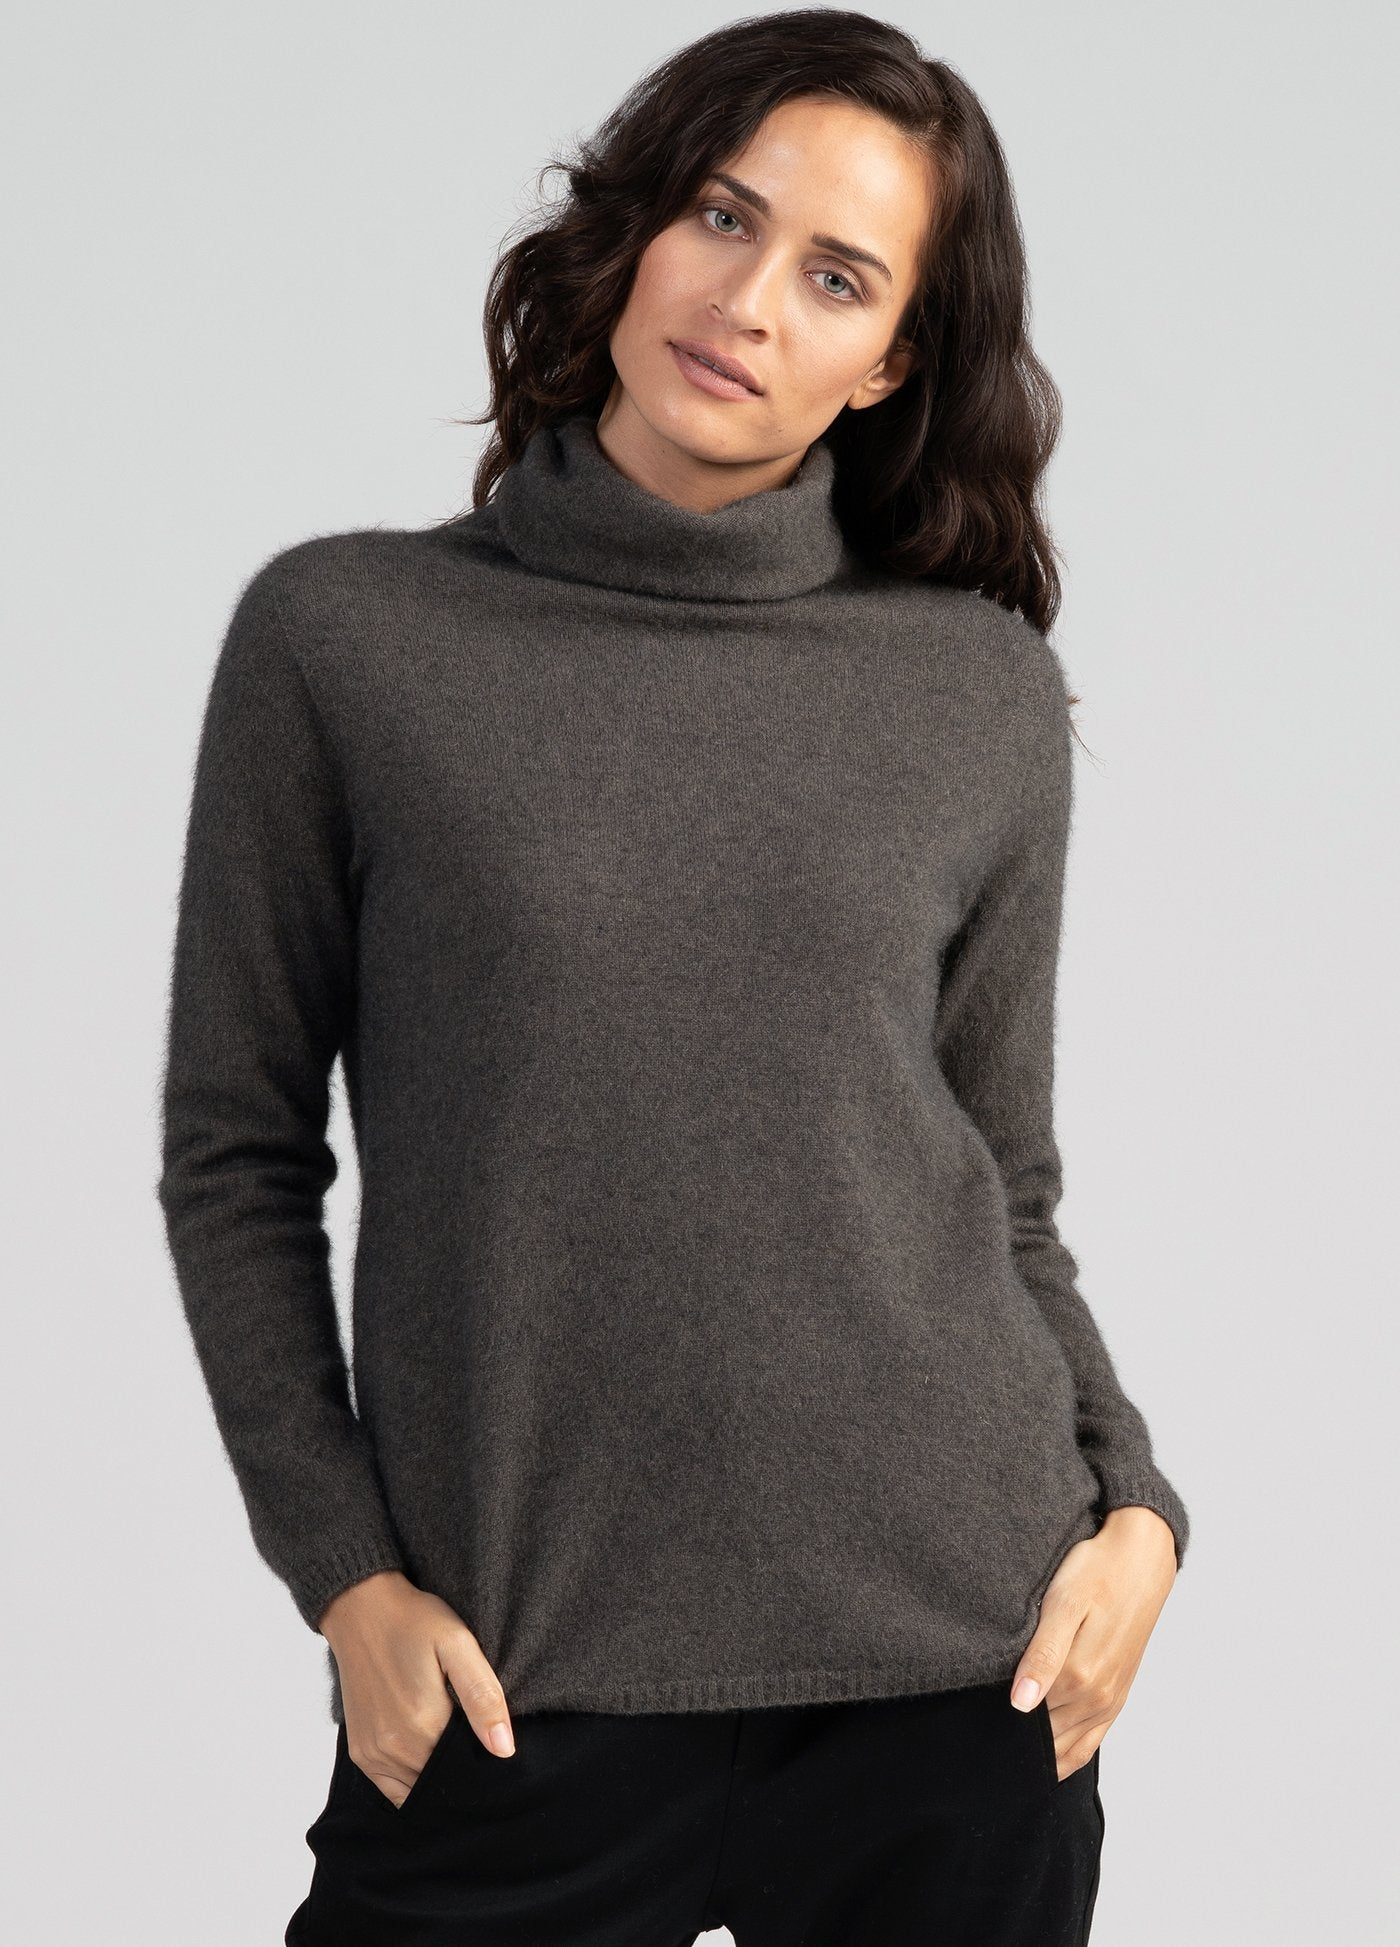 FLOAT SWEATER - Woolshed Gallery